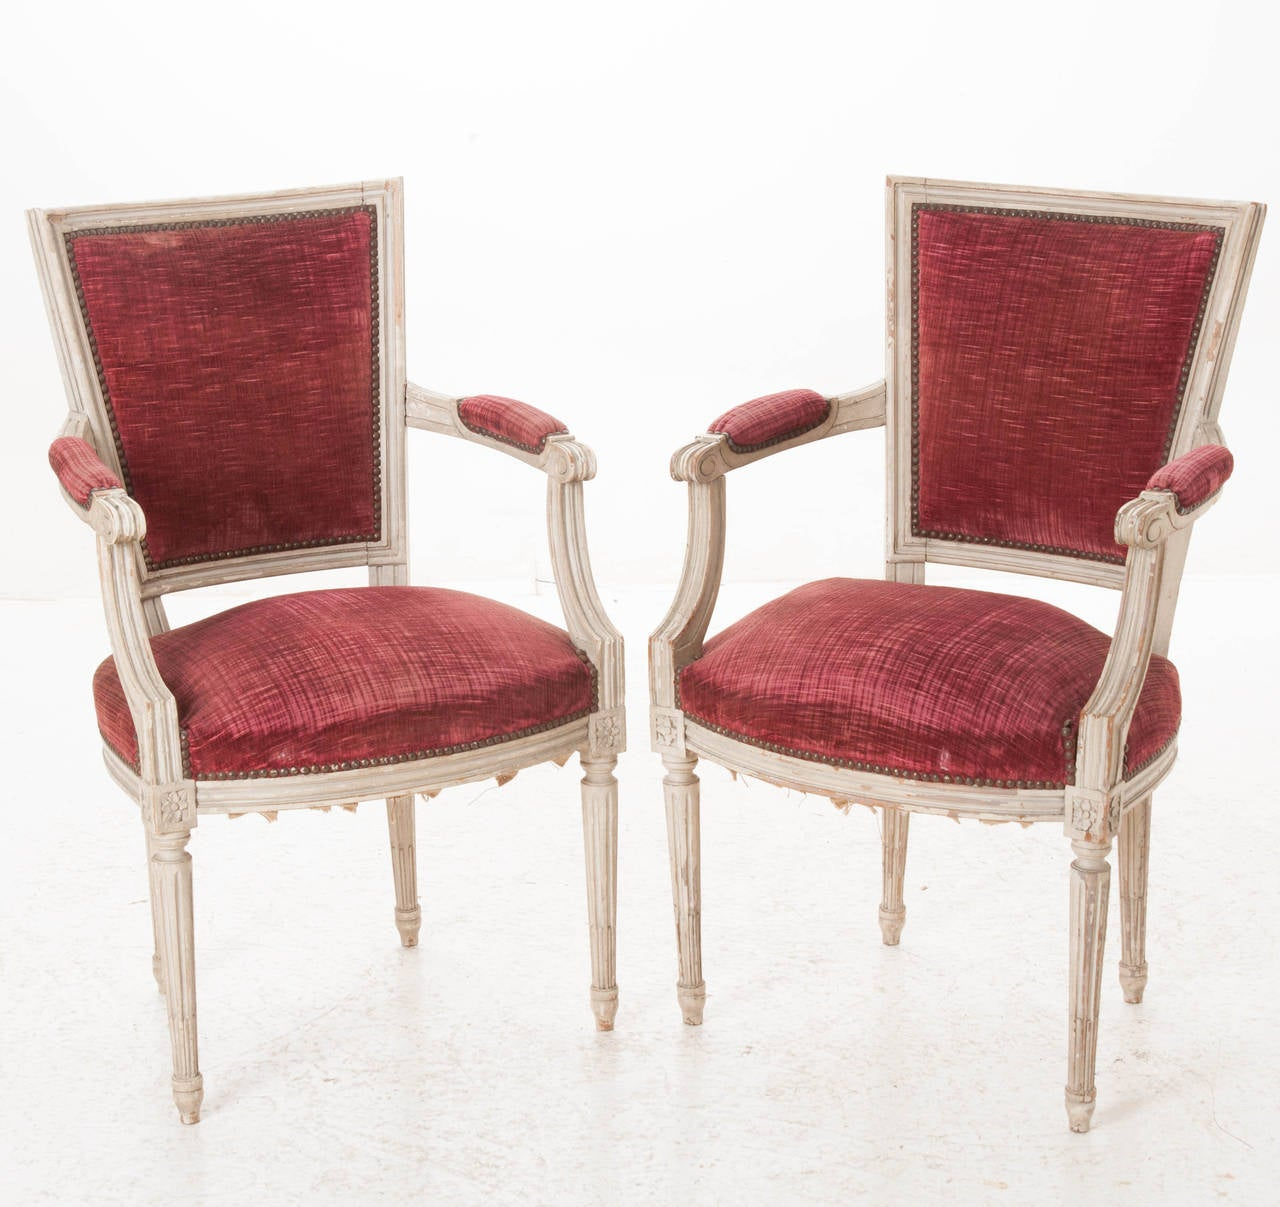 A glorious pair of Louis XVI style painted armchairs from the early 1900 with their original red velvet upholstery! The red color really make these beauties pop!